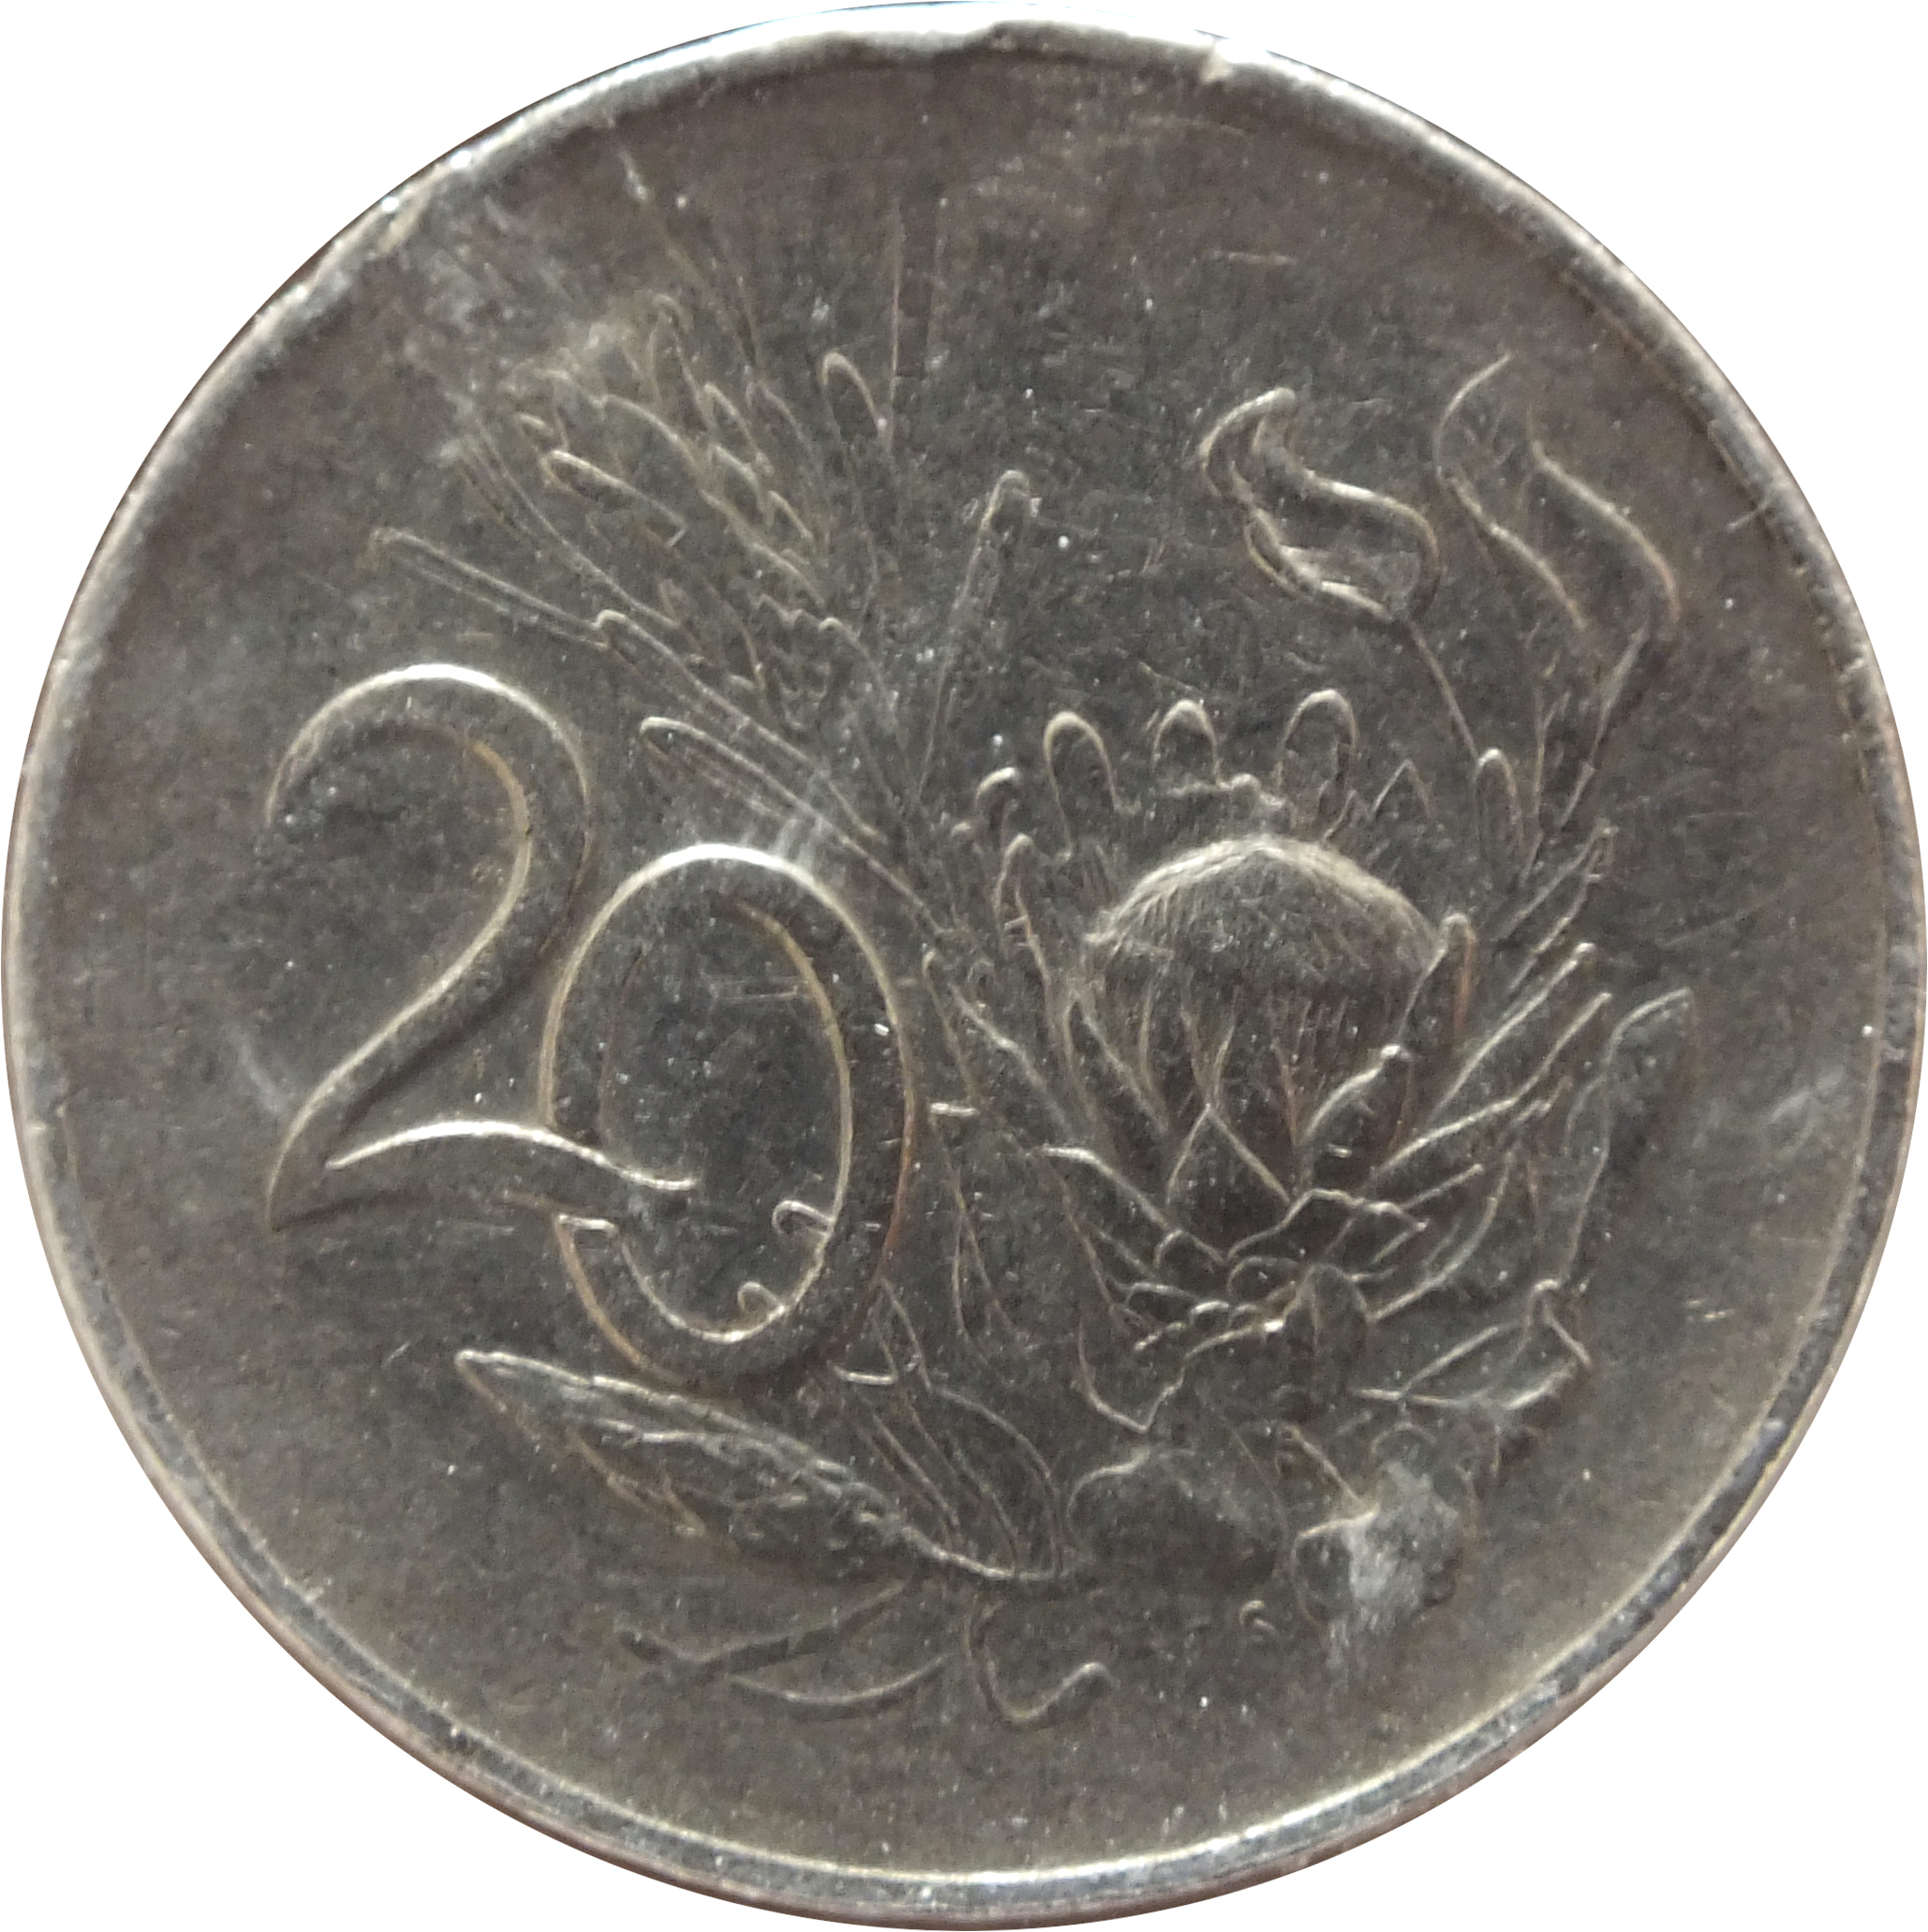 20 Cents Suid Afrika 1965 1969 South Africa Km 69 2 Coinsbook